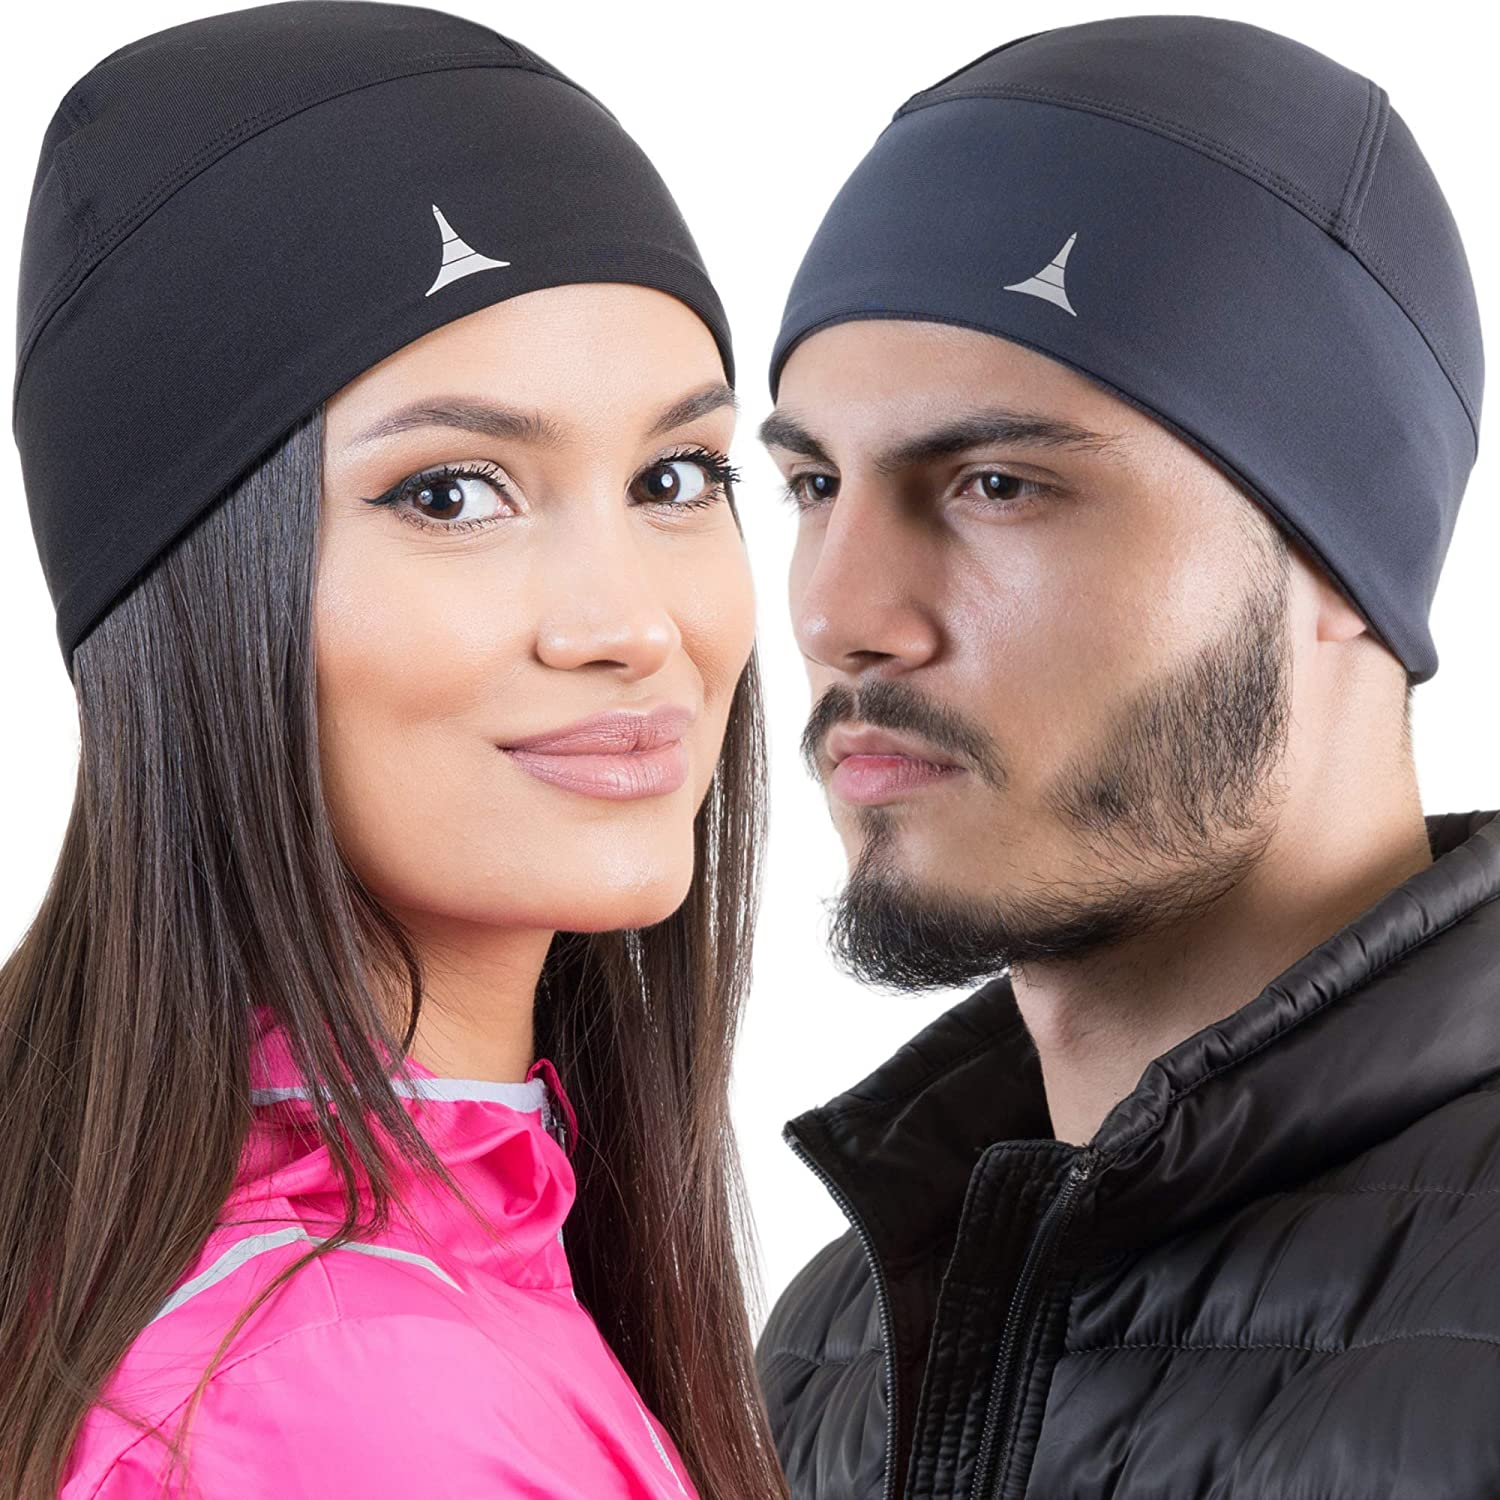 Helmet Liner Sweat Wicking Cooling Skull Cap Beanie. Ultimate Performance Moisture Wicking. Fits Under Helmets